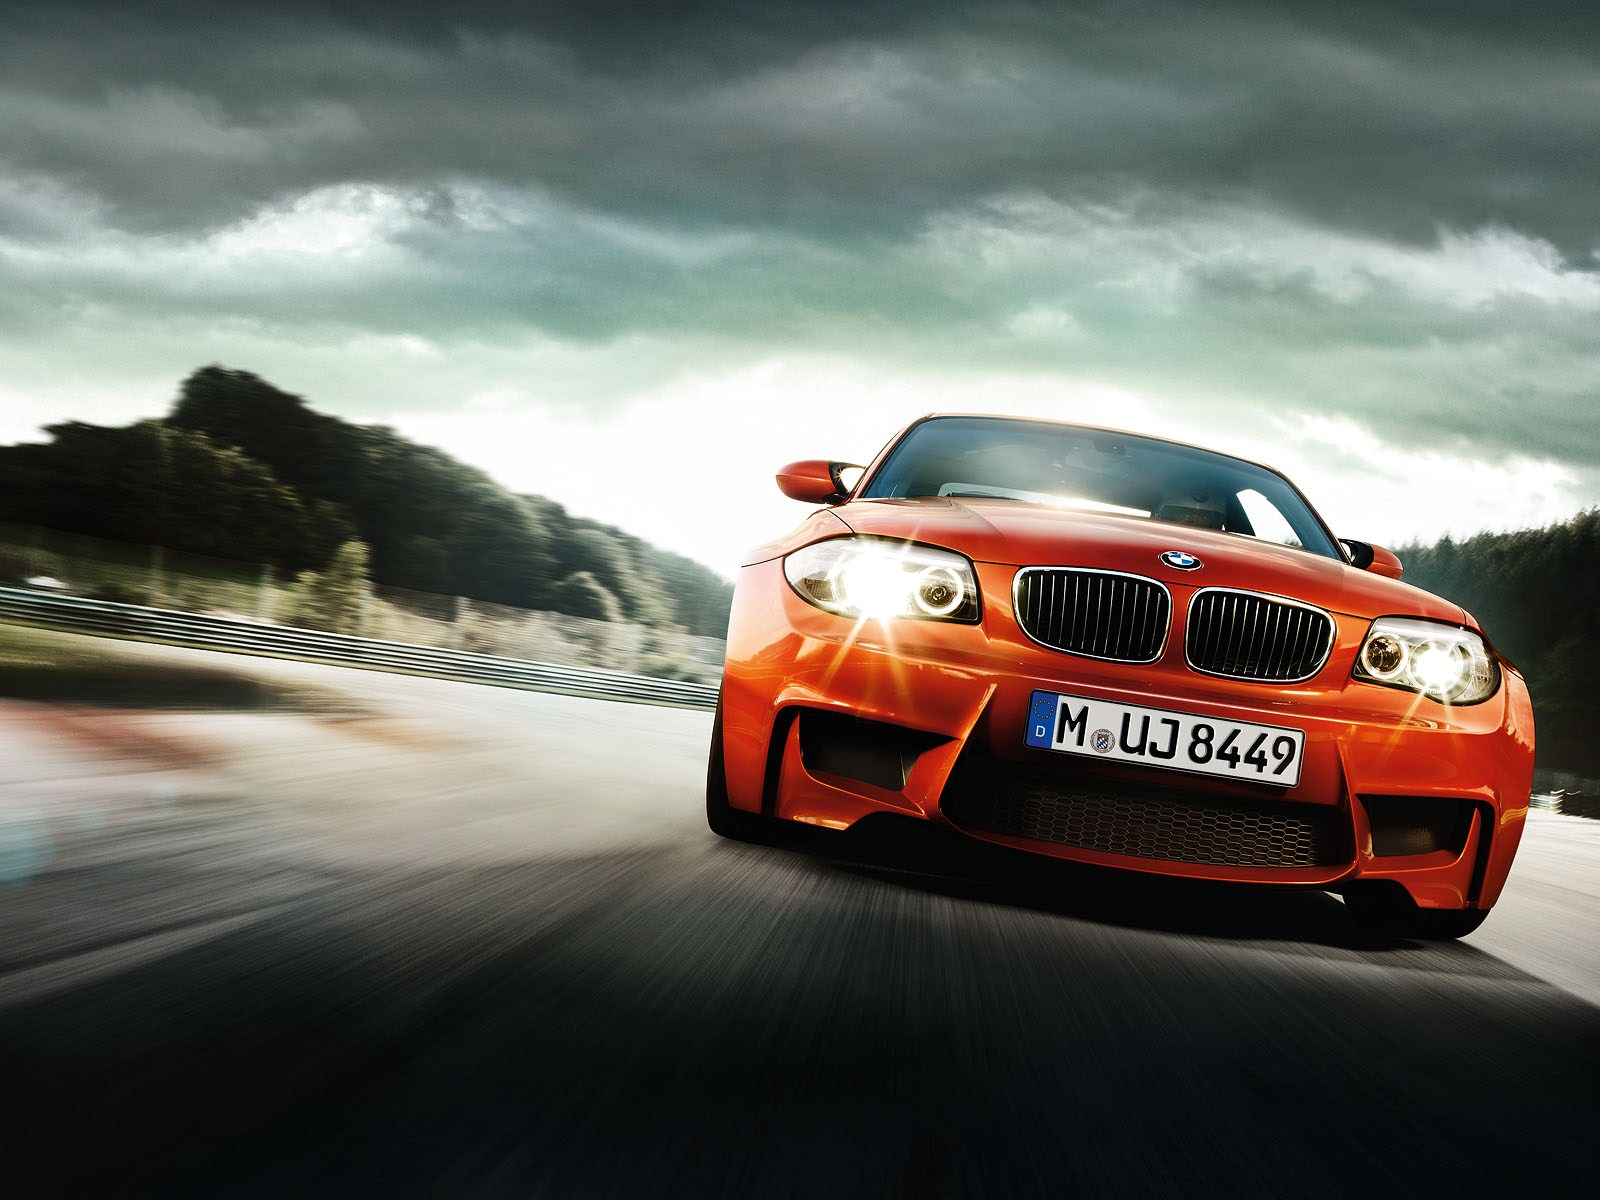 BMW-by-Anna-Rapoport-on-FL-Cars-HDQ-KB-wallpaper-wp3403439